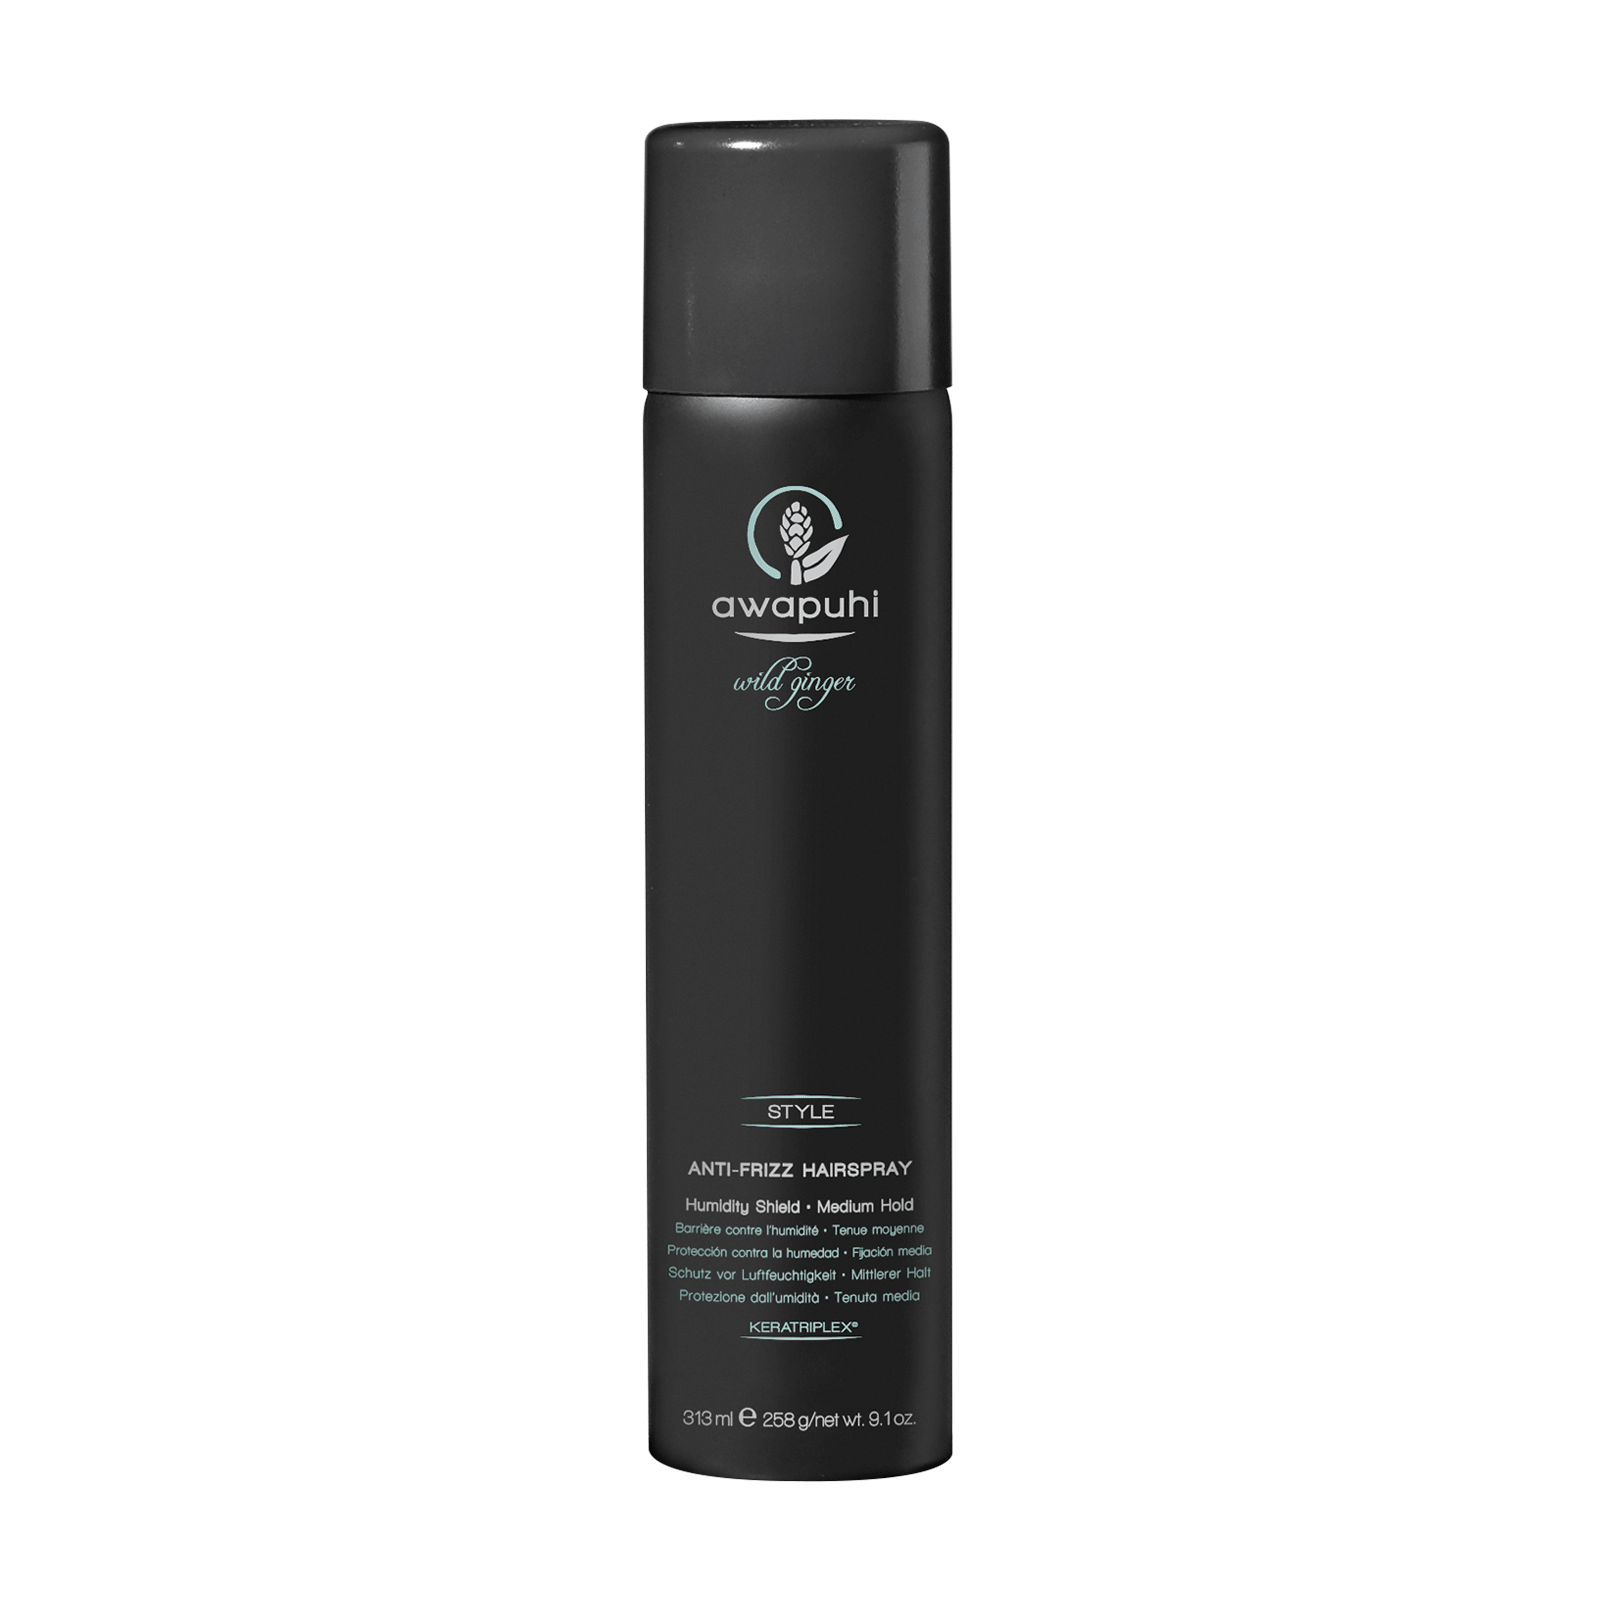 Anti-Frizz Hairspray